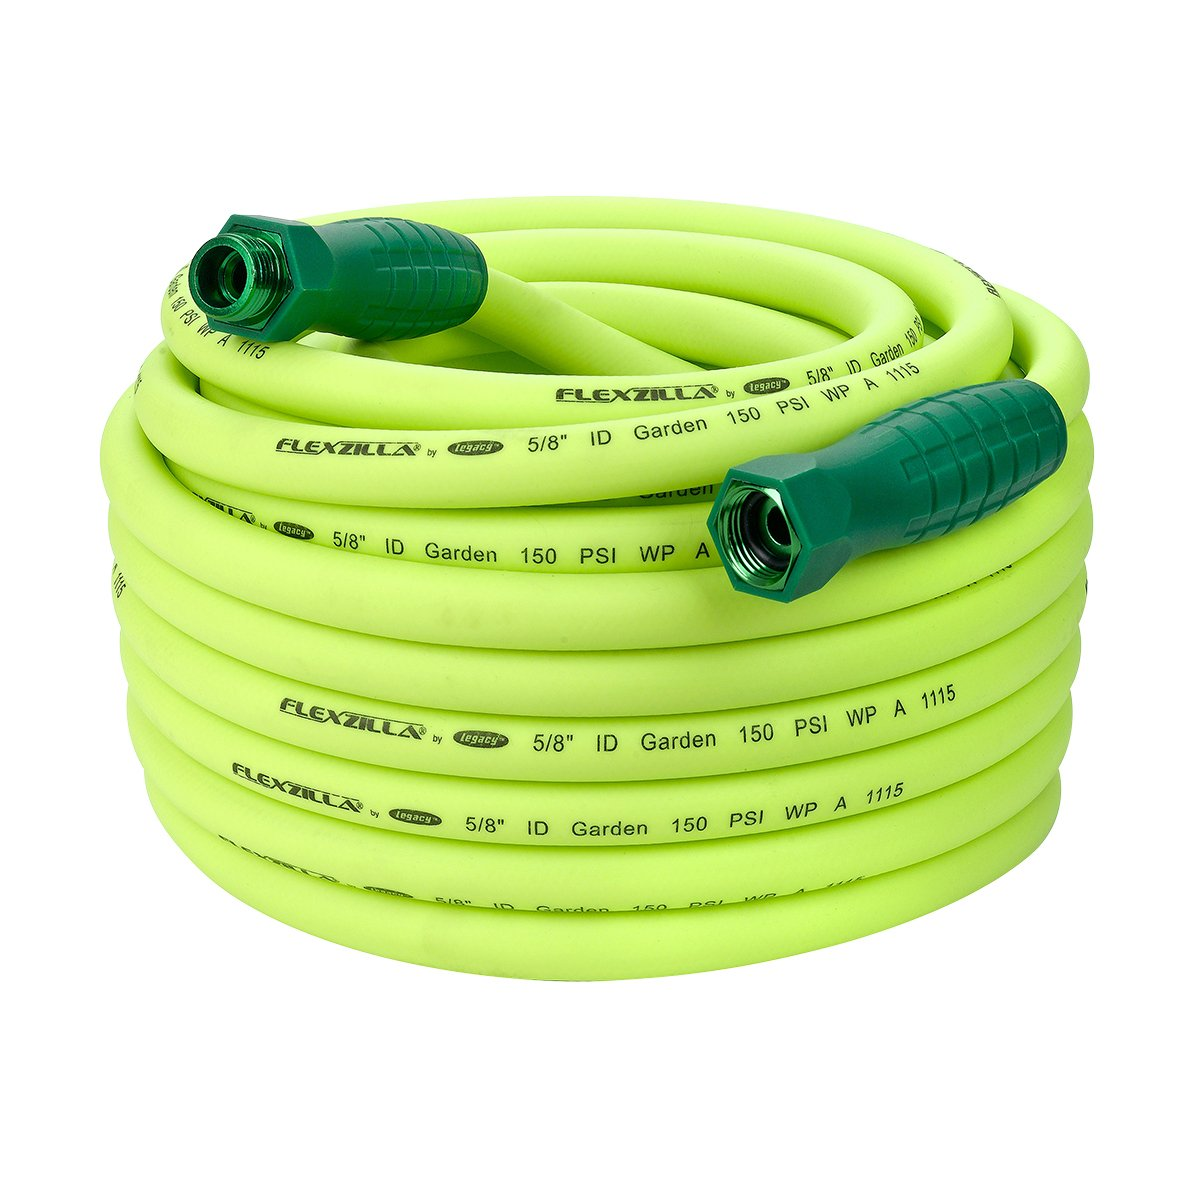 "Flexzilla HFZG575YWS Garden Hose, 5/8"" (inches) x 75' (feet) ZillaGreen w/SwivelGrip"